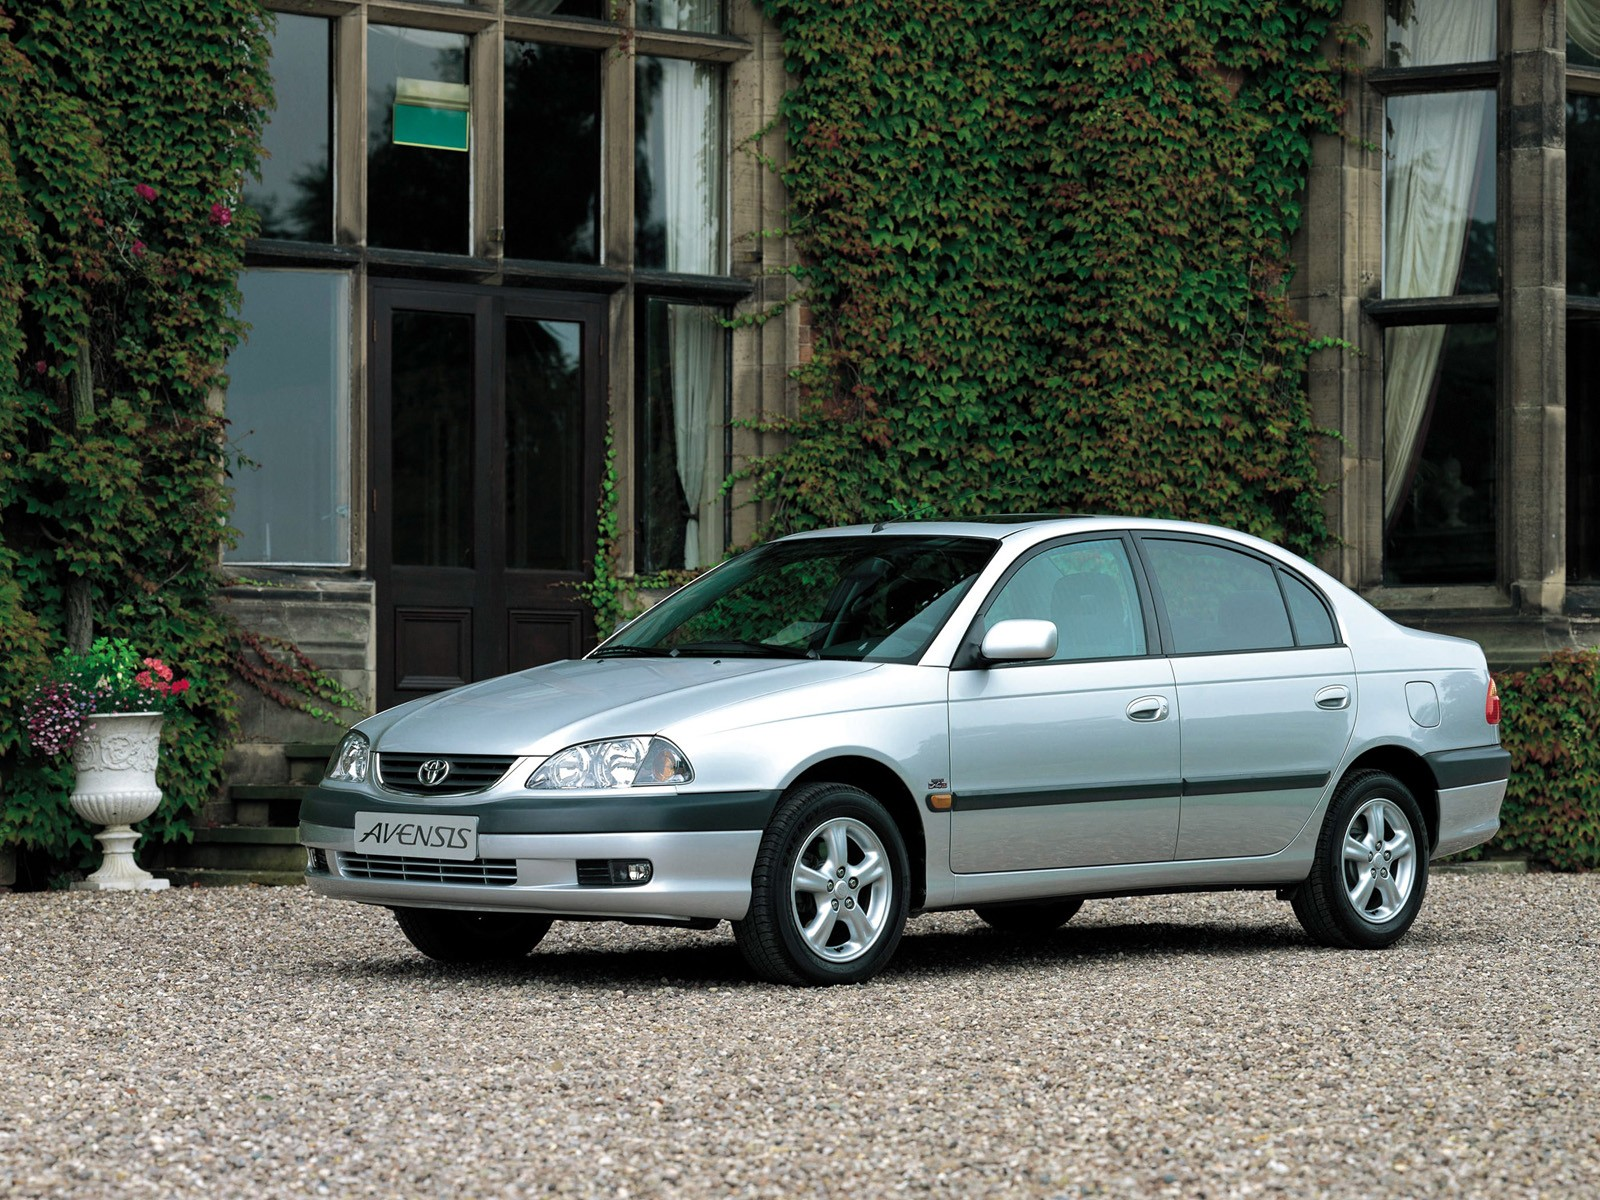 TOYOTA Avensis specs & photos - 2000, 2001, 2002, 2003 ...